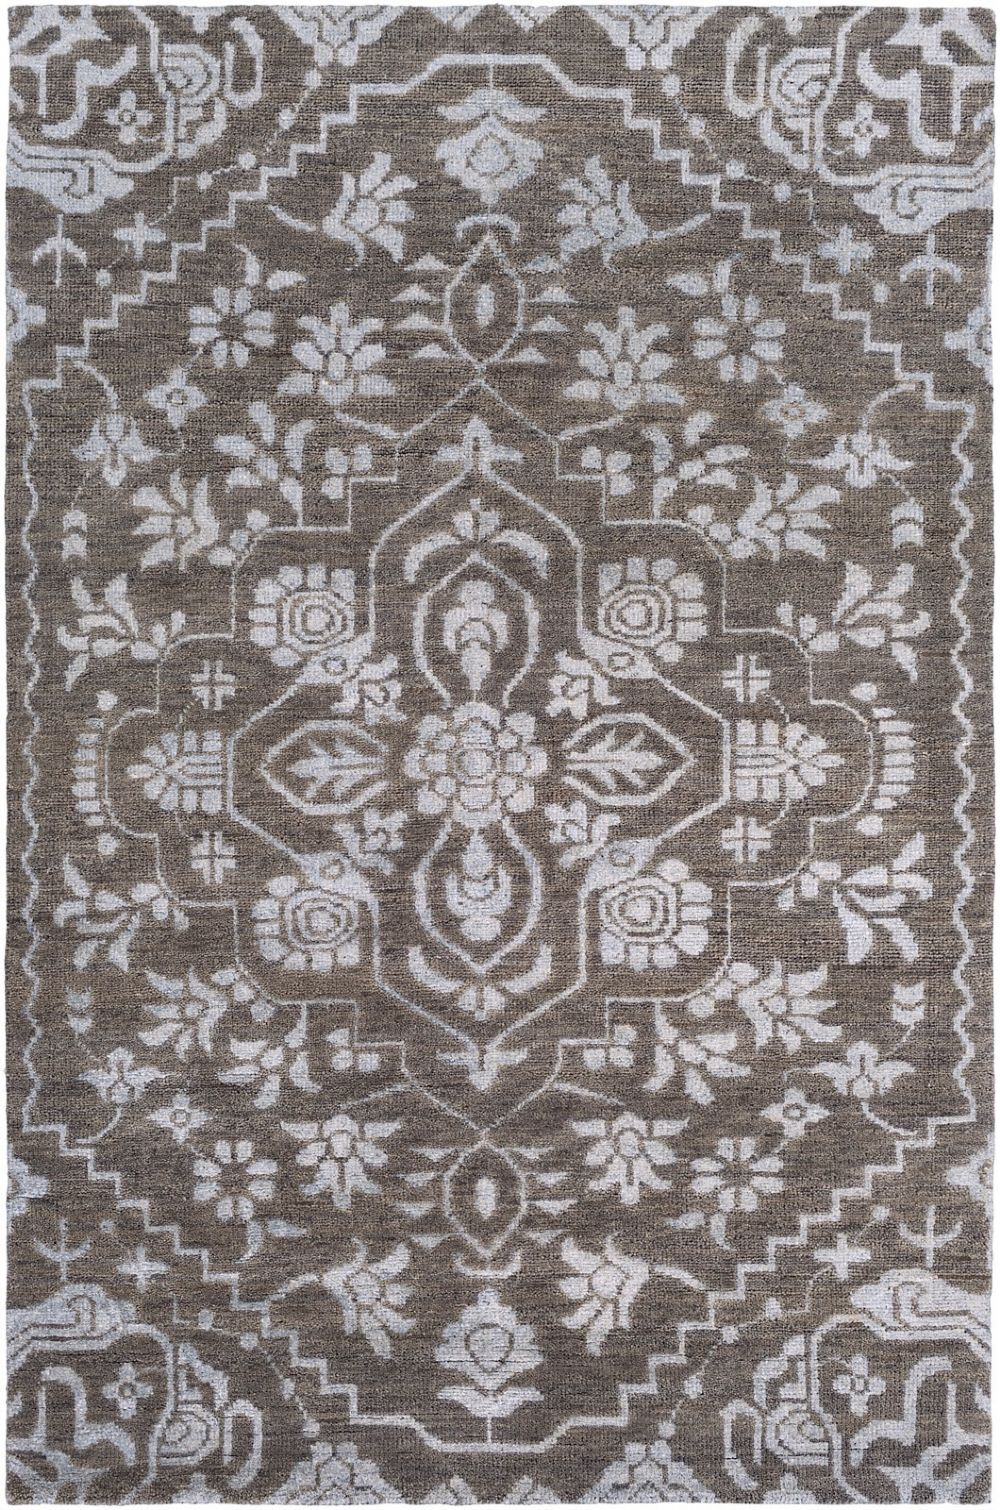 surya kinnara country & floral area rug collection